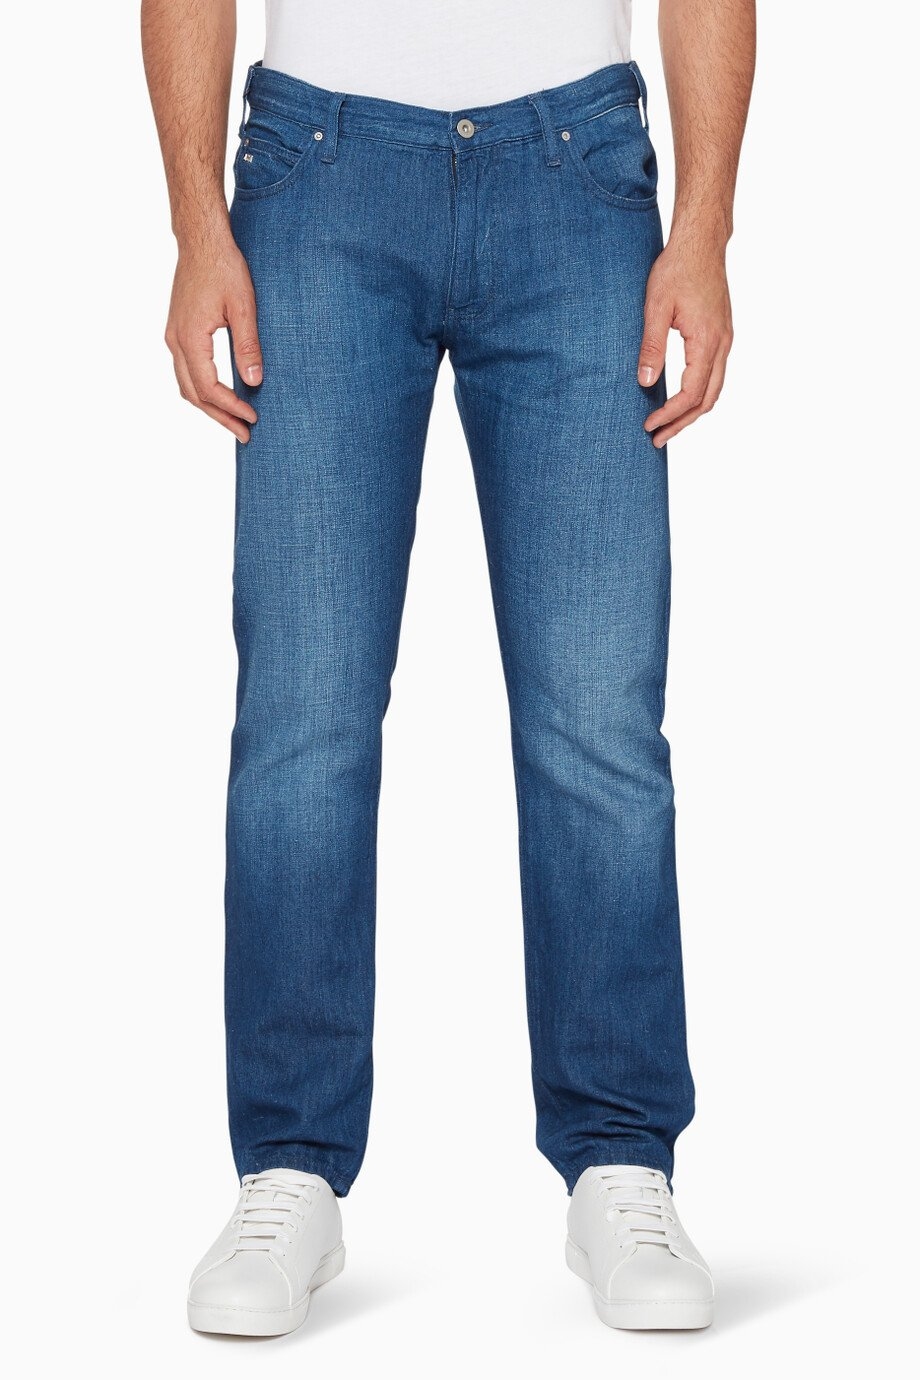 de12c494 Shop Emporio Armani Blue Blue Regular-Fit Medium Wash Jeans for Men ...